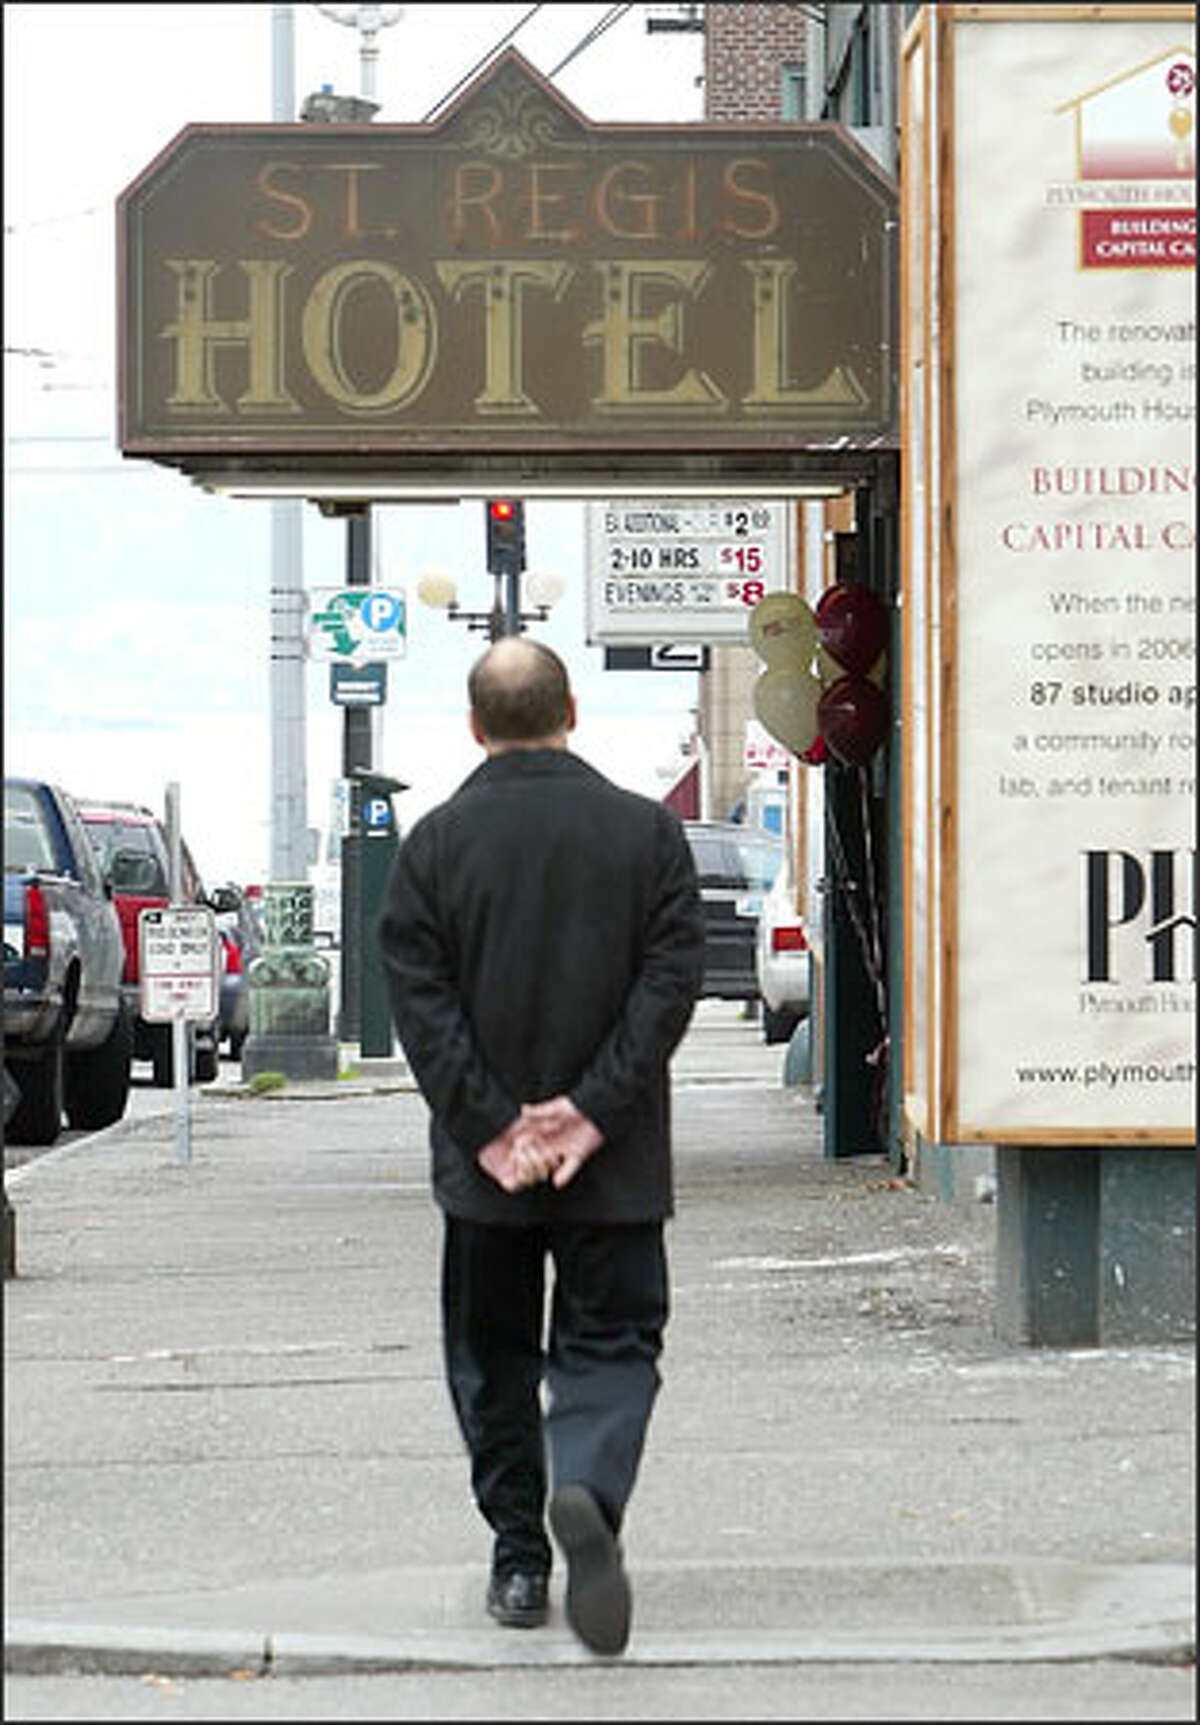 A pedestrian strolls past the old St. Regis Hotel at Second and Stewart in downtown Seattle.